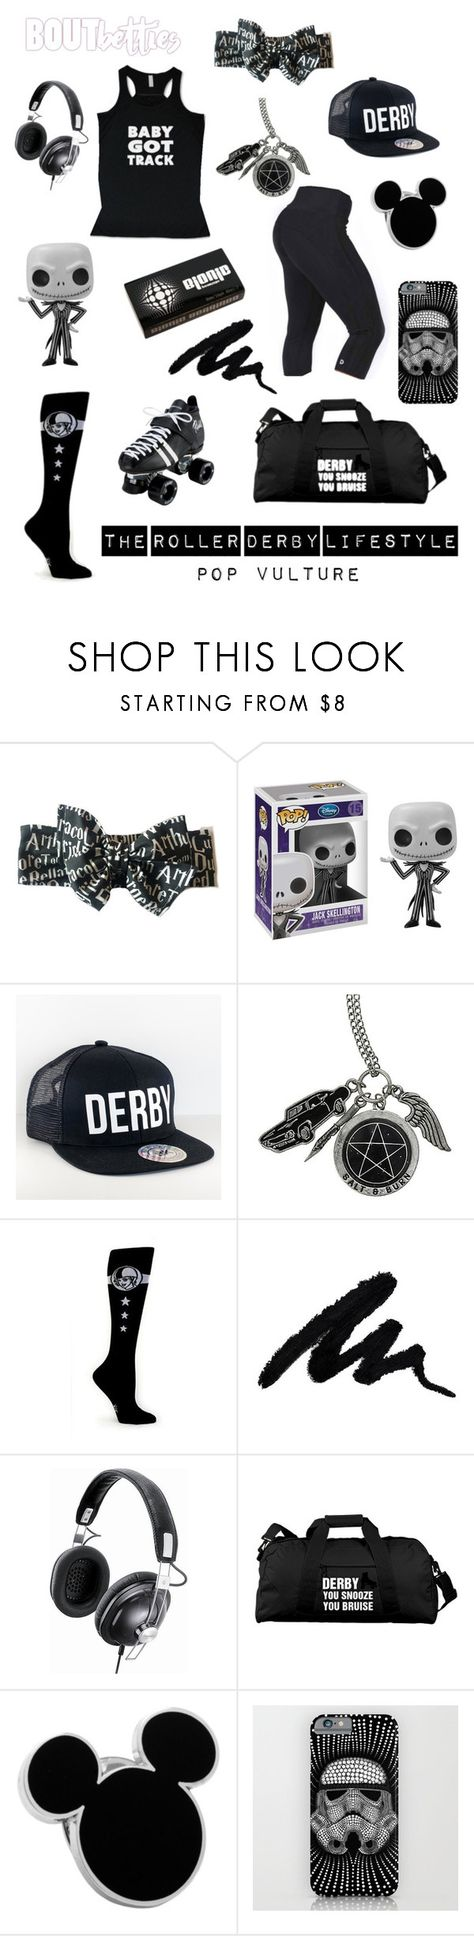 Roller derby fashion | Pop Vulture by Bout Betties on Polyvore featuring Panasonic, Disney and Hot Topic